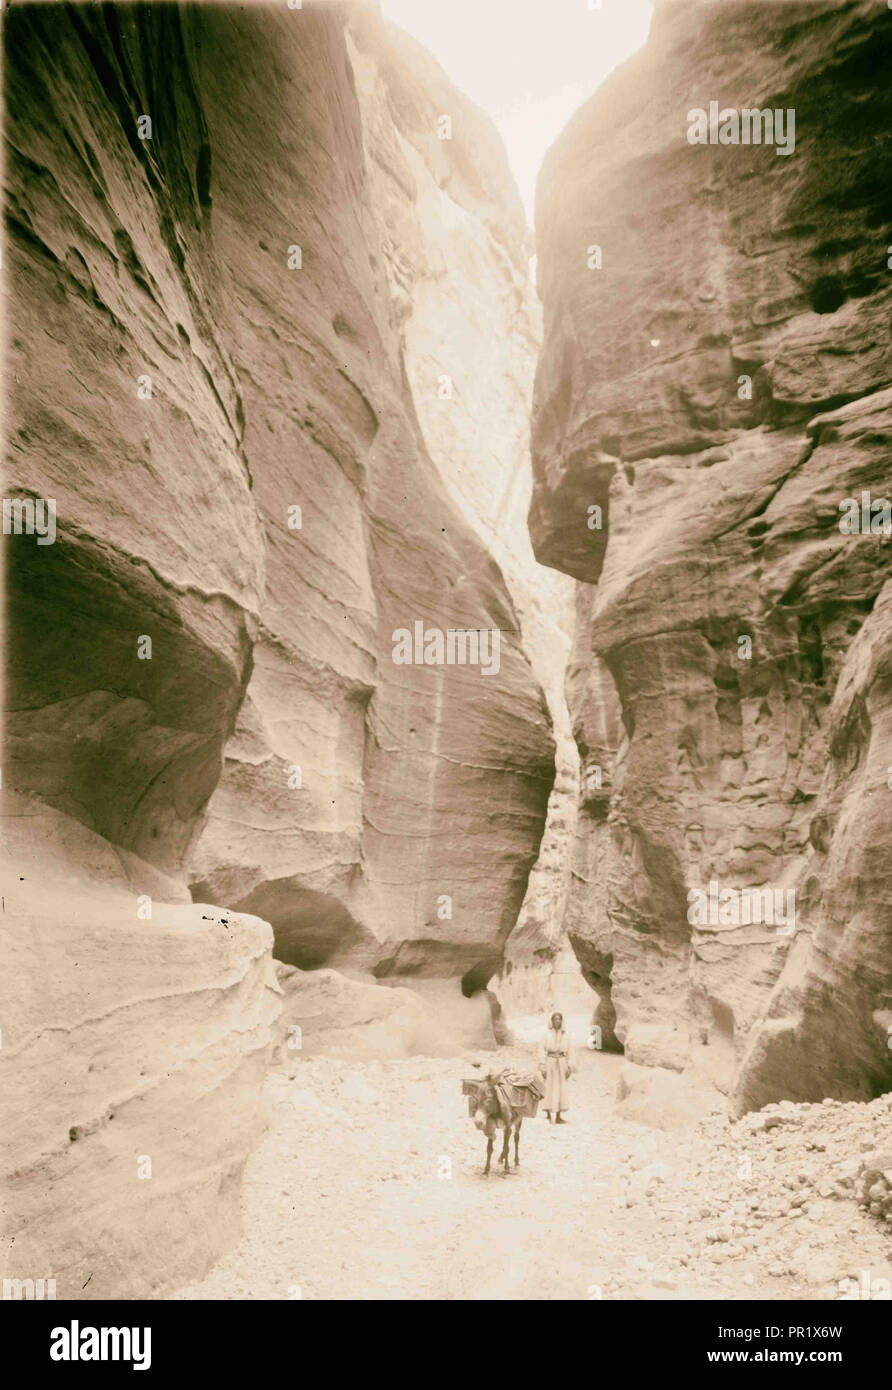 Petra, es Sik. 1898, Jordanie, Petra, la ville disparue Photo Stock